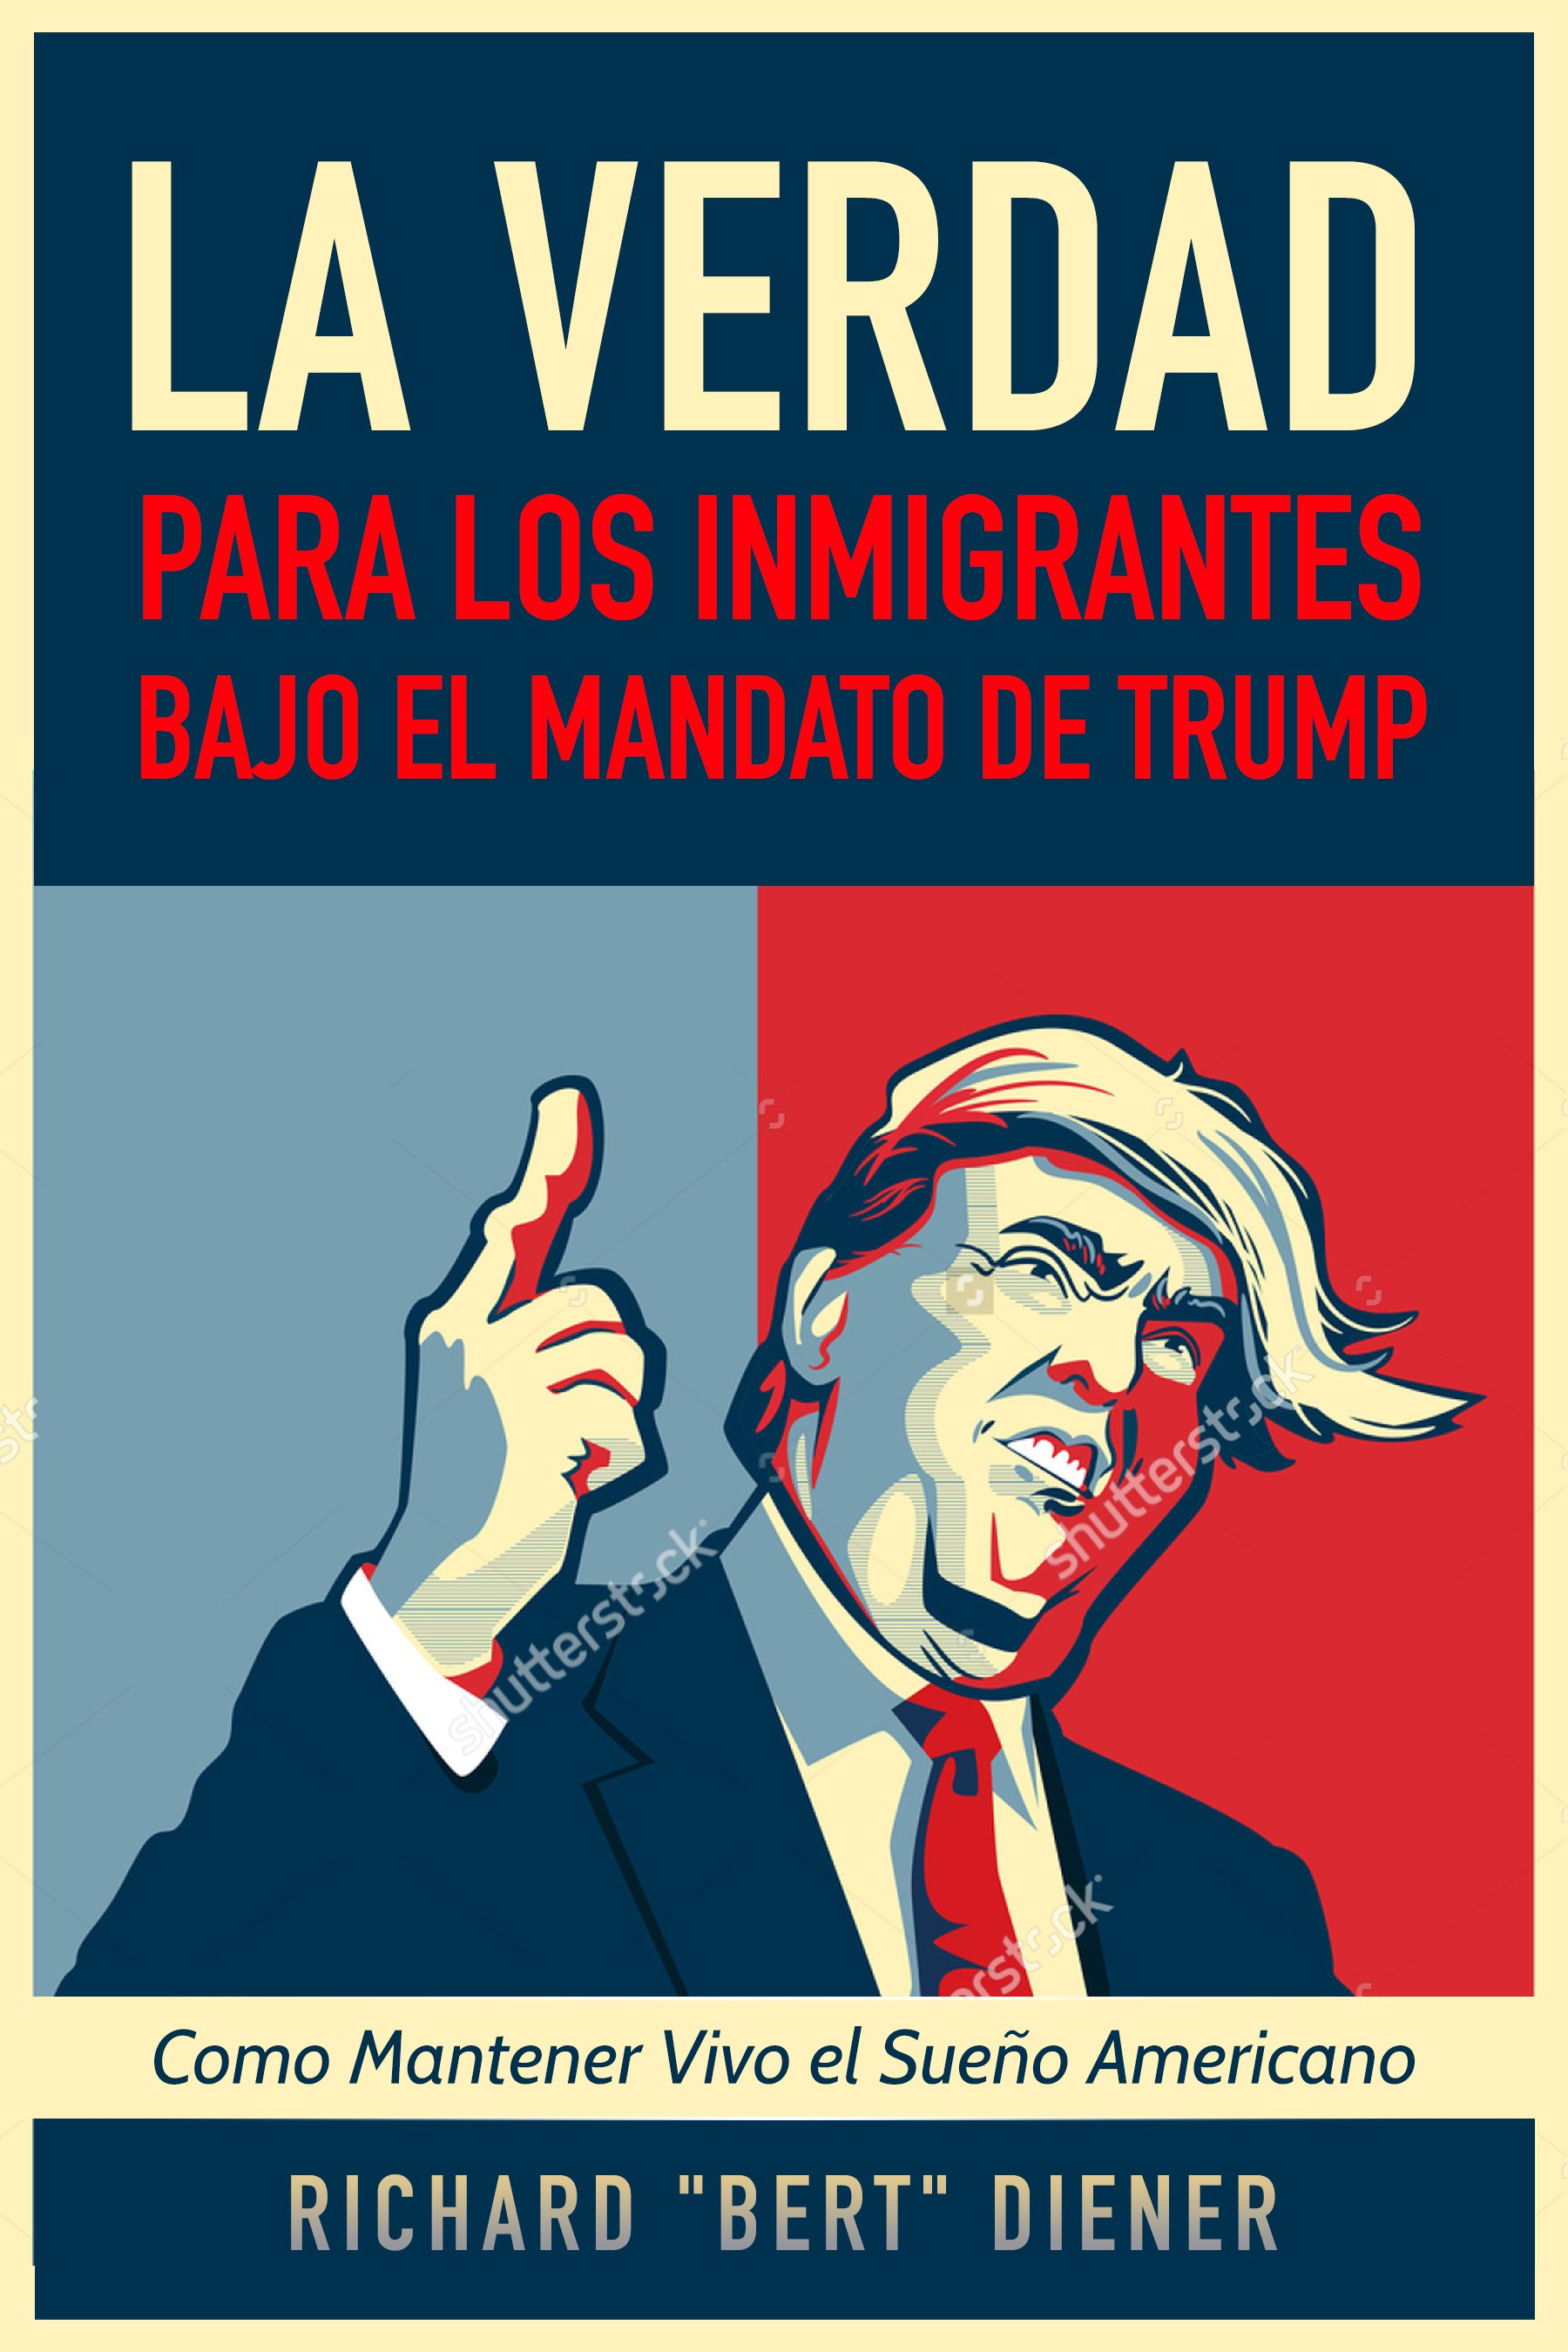 Book on Immigrants and TRUMP - Need a cover!